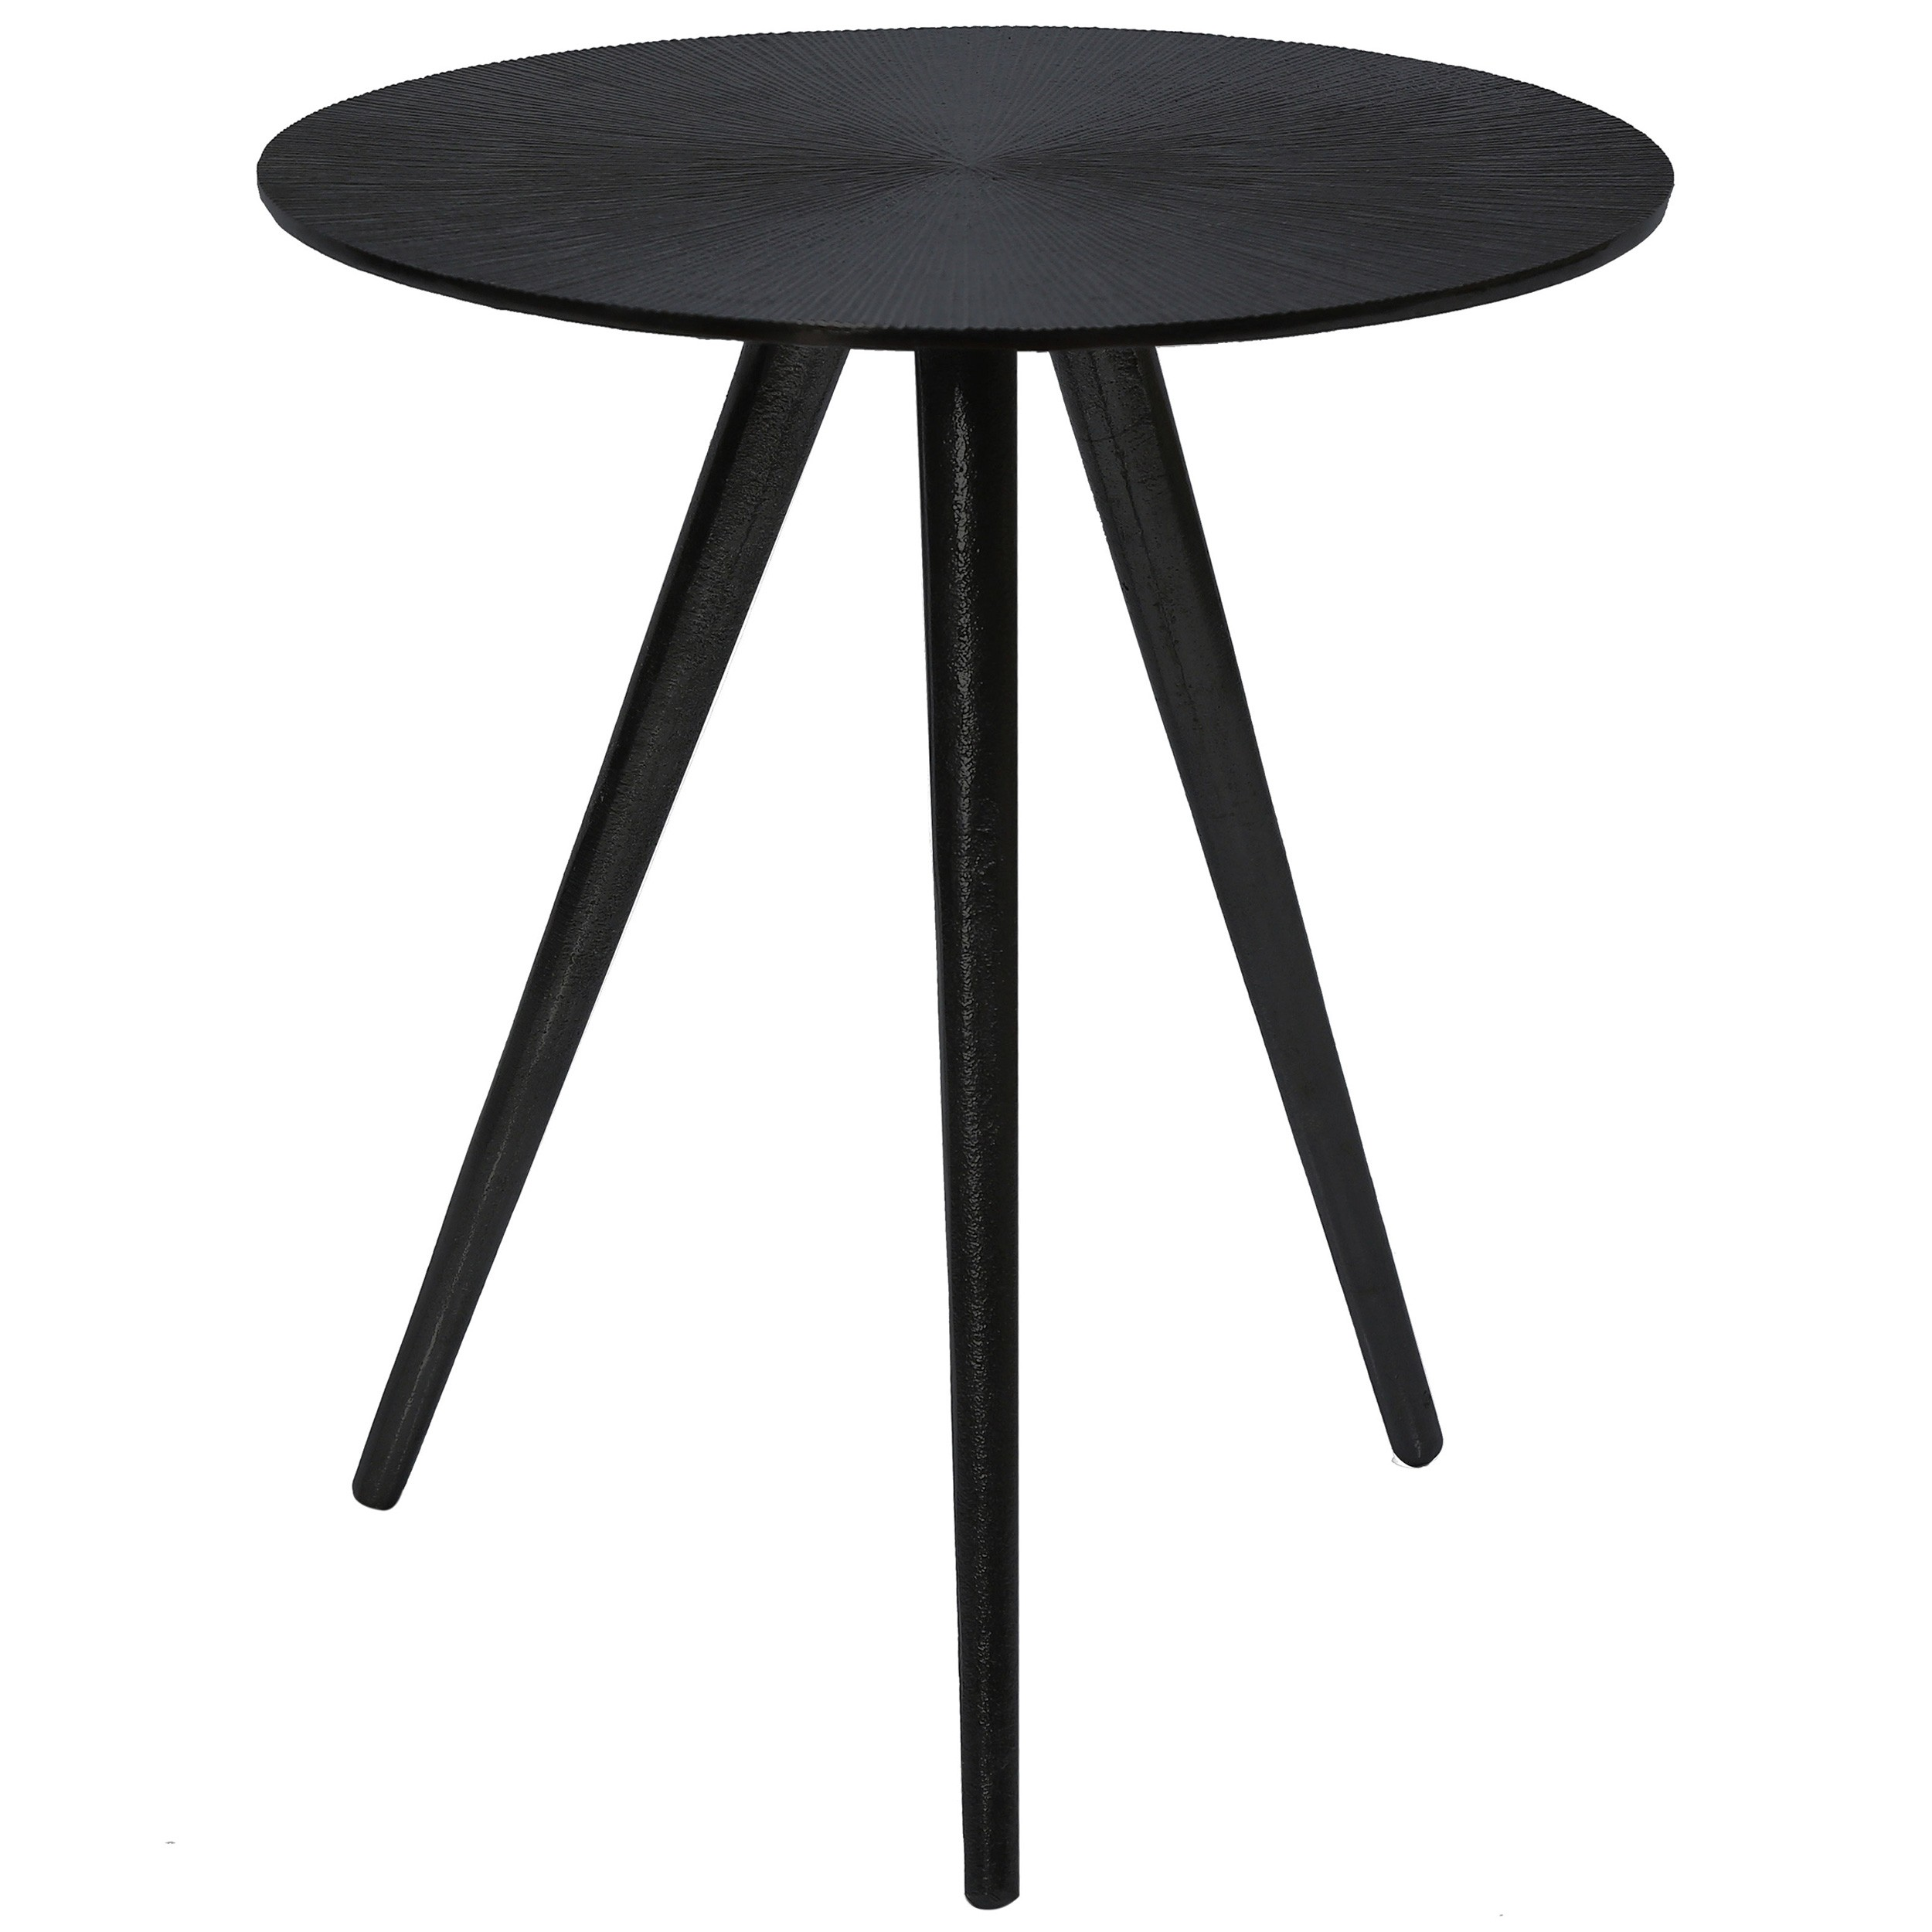 table basse ronde rivak noire commandez nos tables basses rondes rivak noires design rdv d co. Black Bedroom Furniture Sets. Home Design Ideas